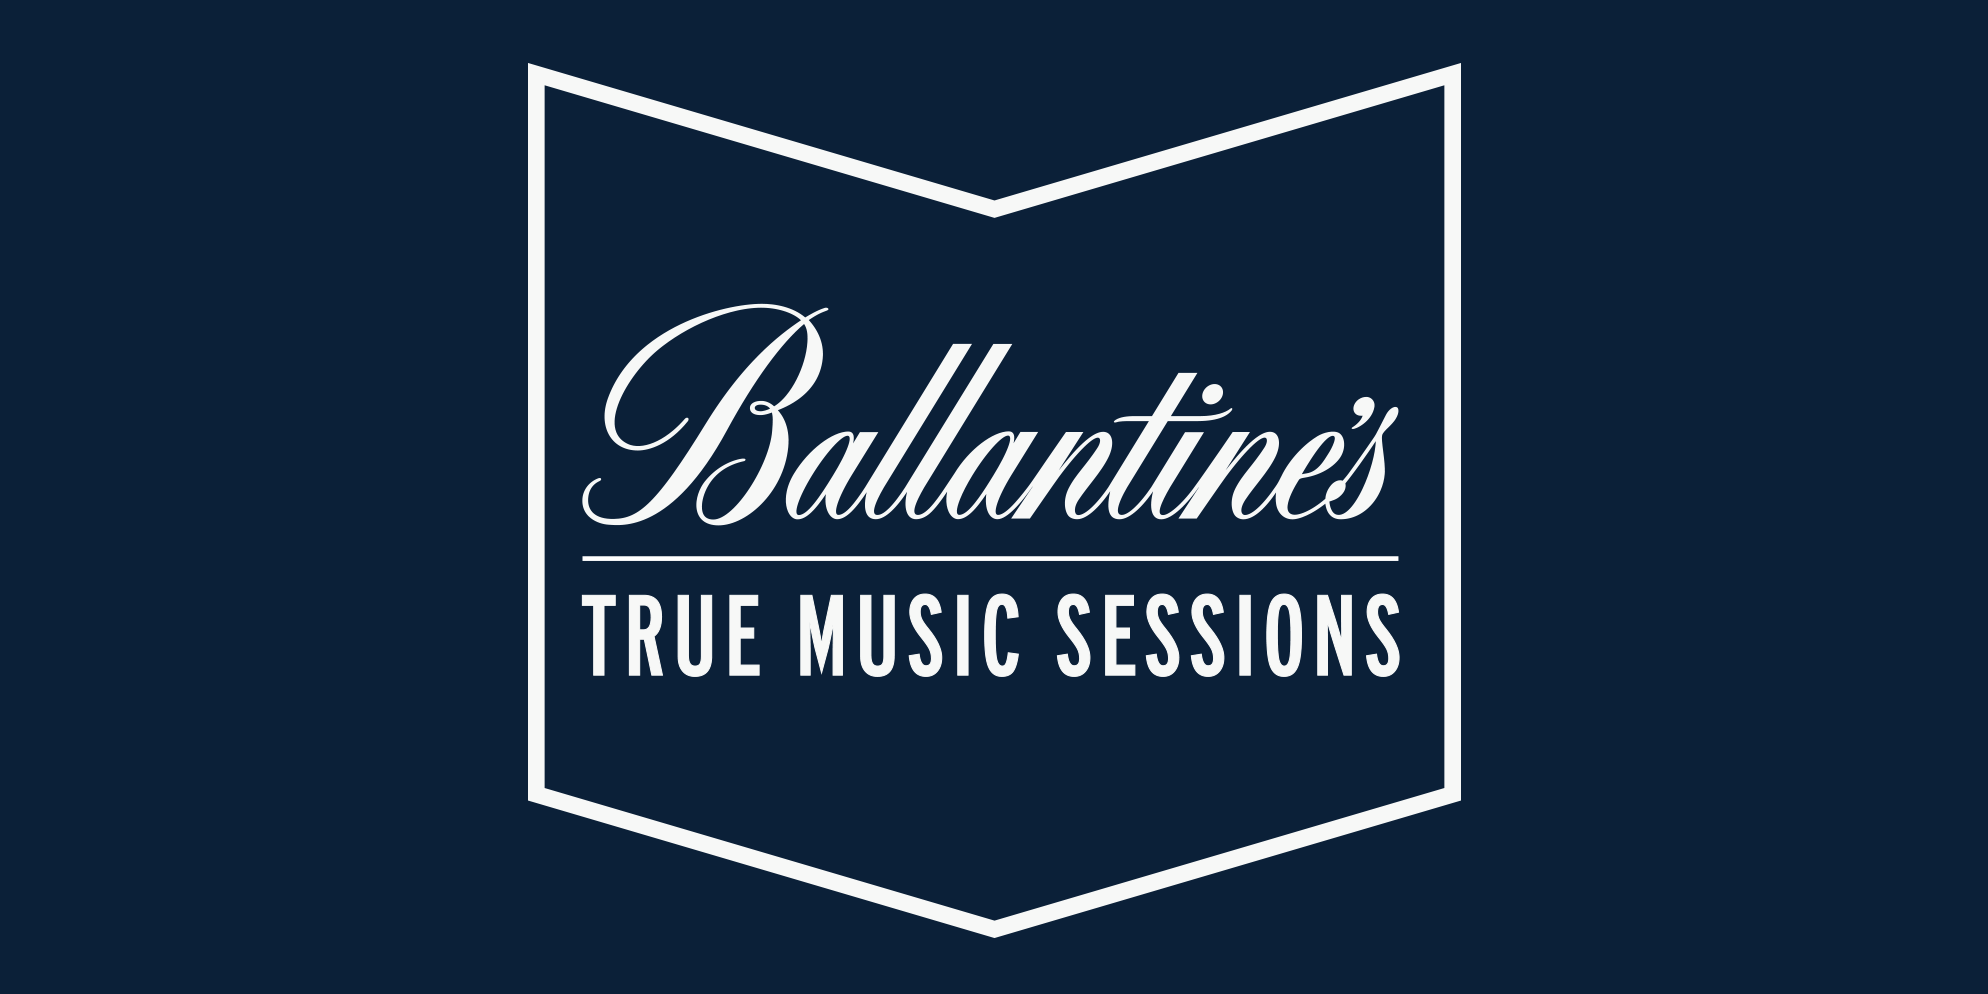 KID FONQUE AND BALLANTINE'S PRESENTS TRUE MUSIC SESSIONS